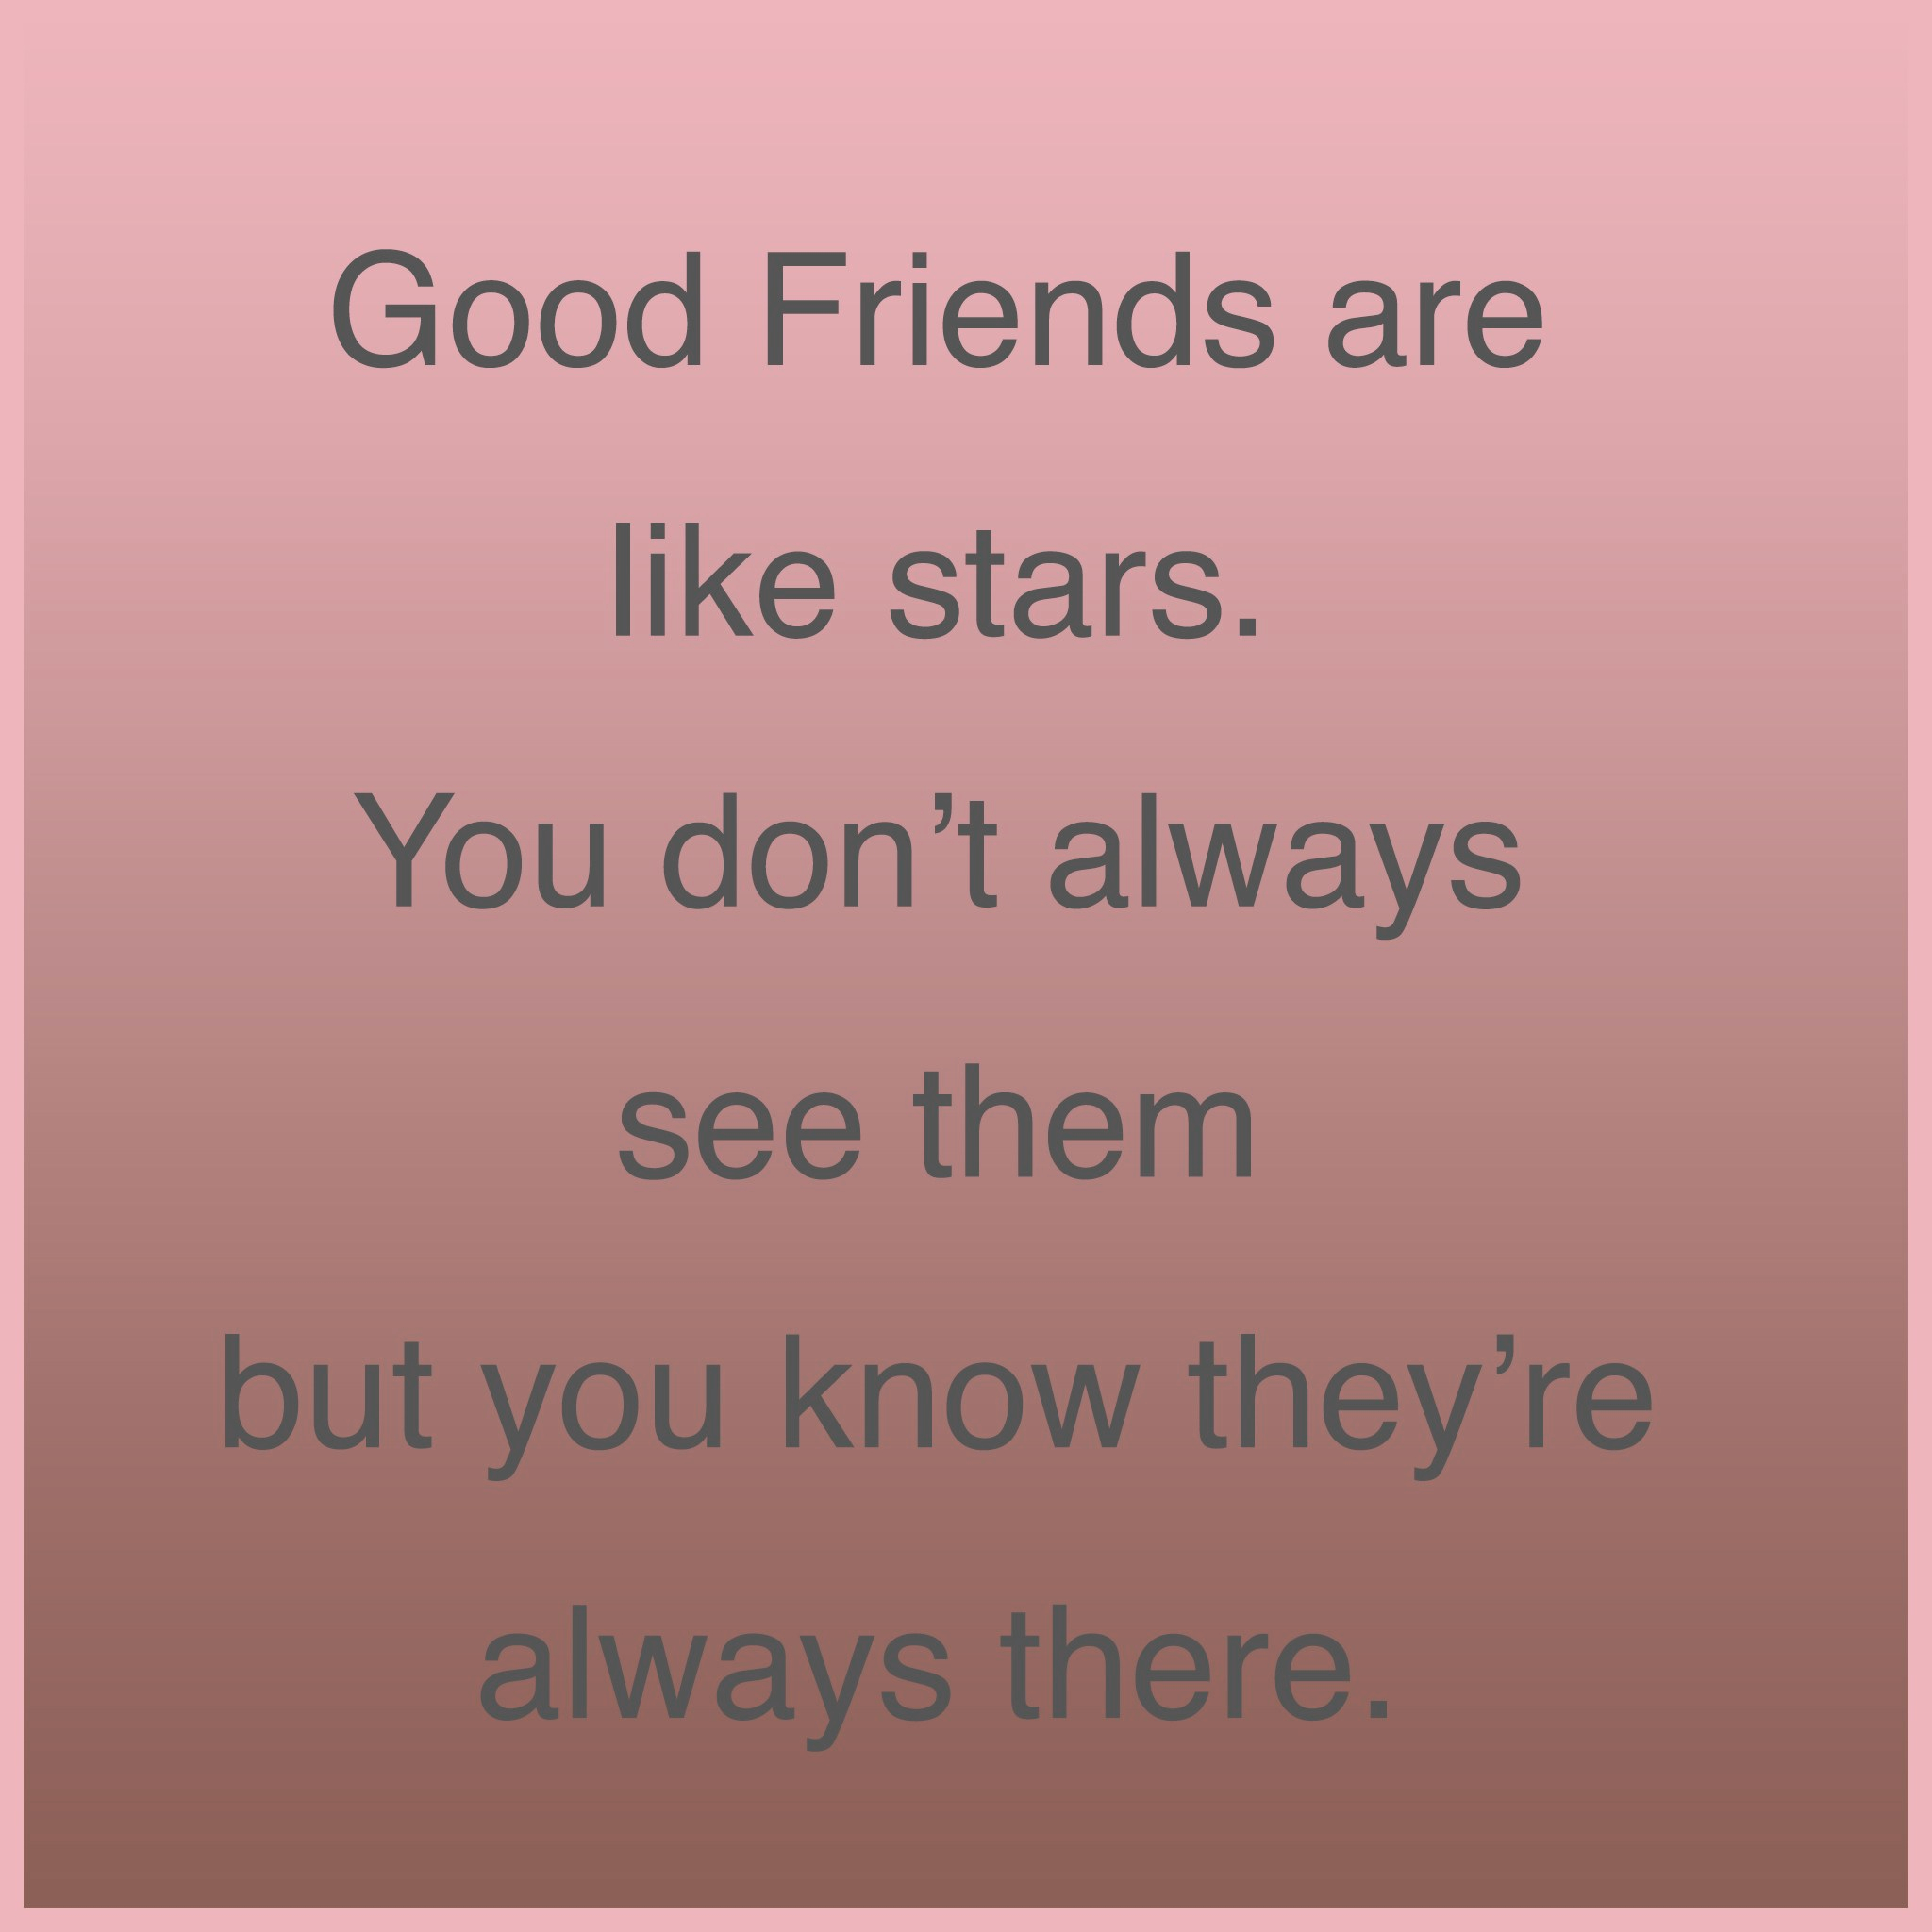 Good friends are like stars. You don't always see them but you know they're always there.